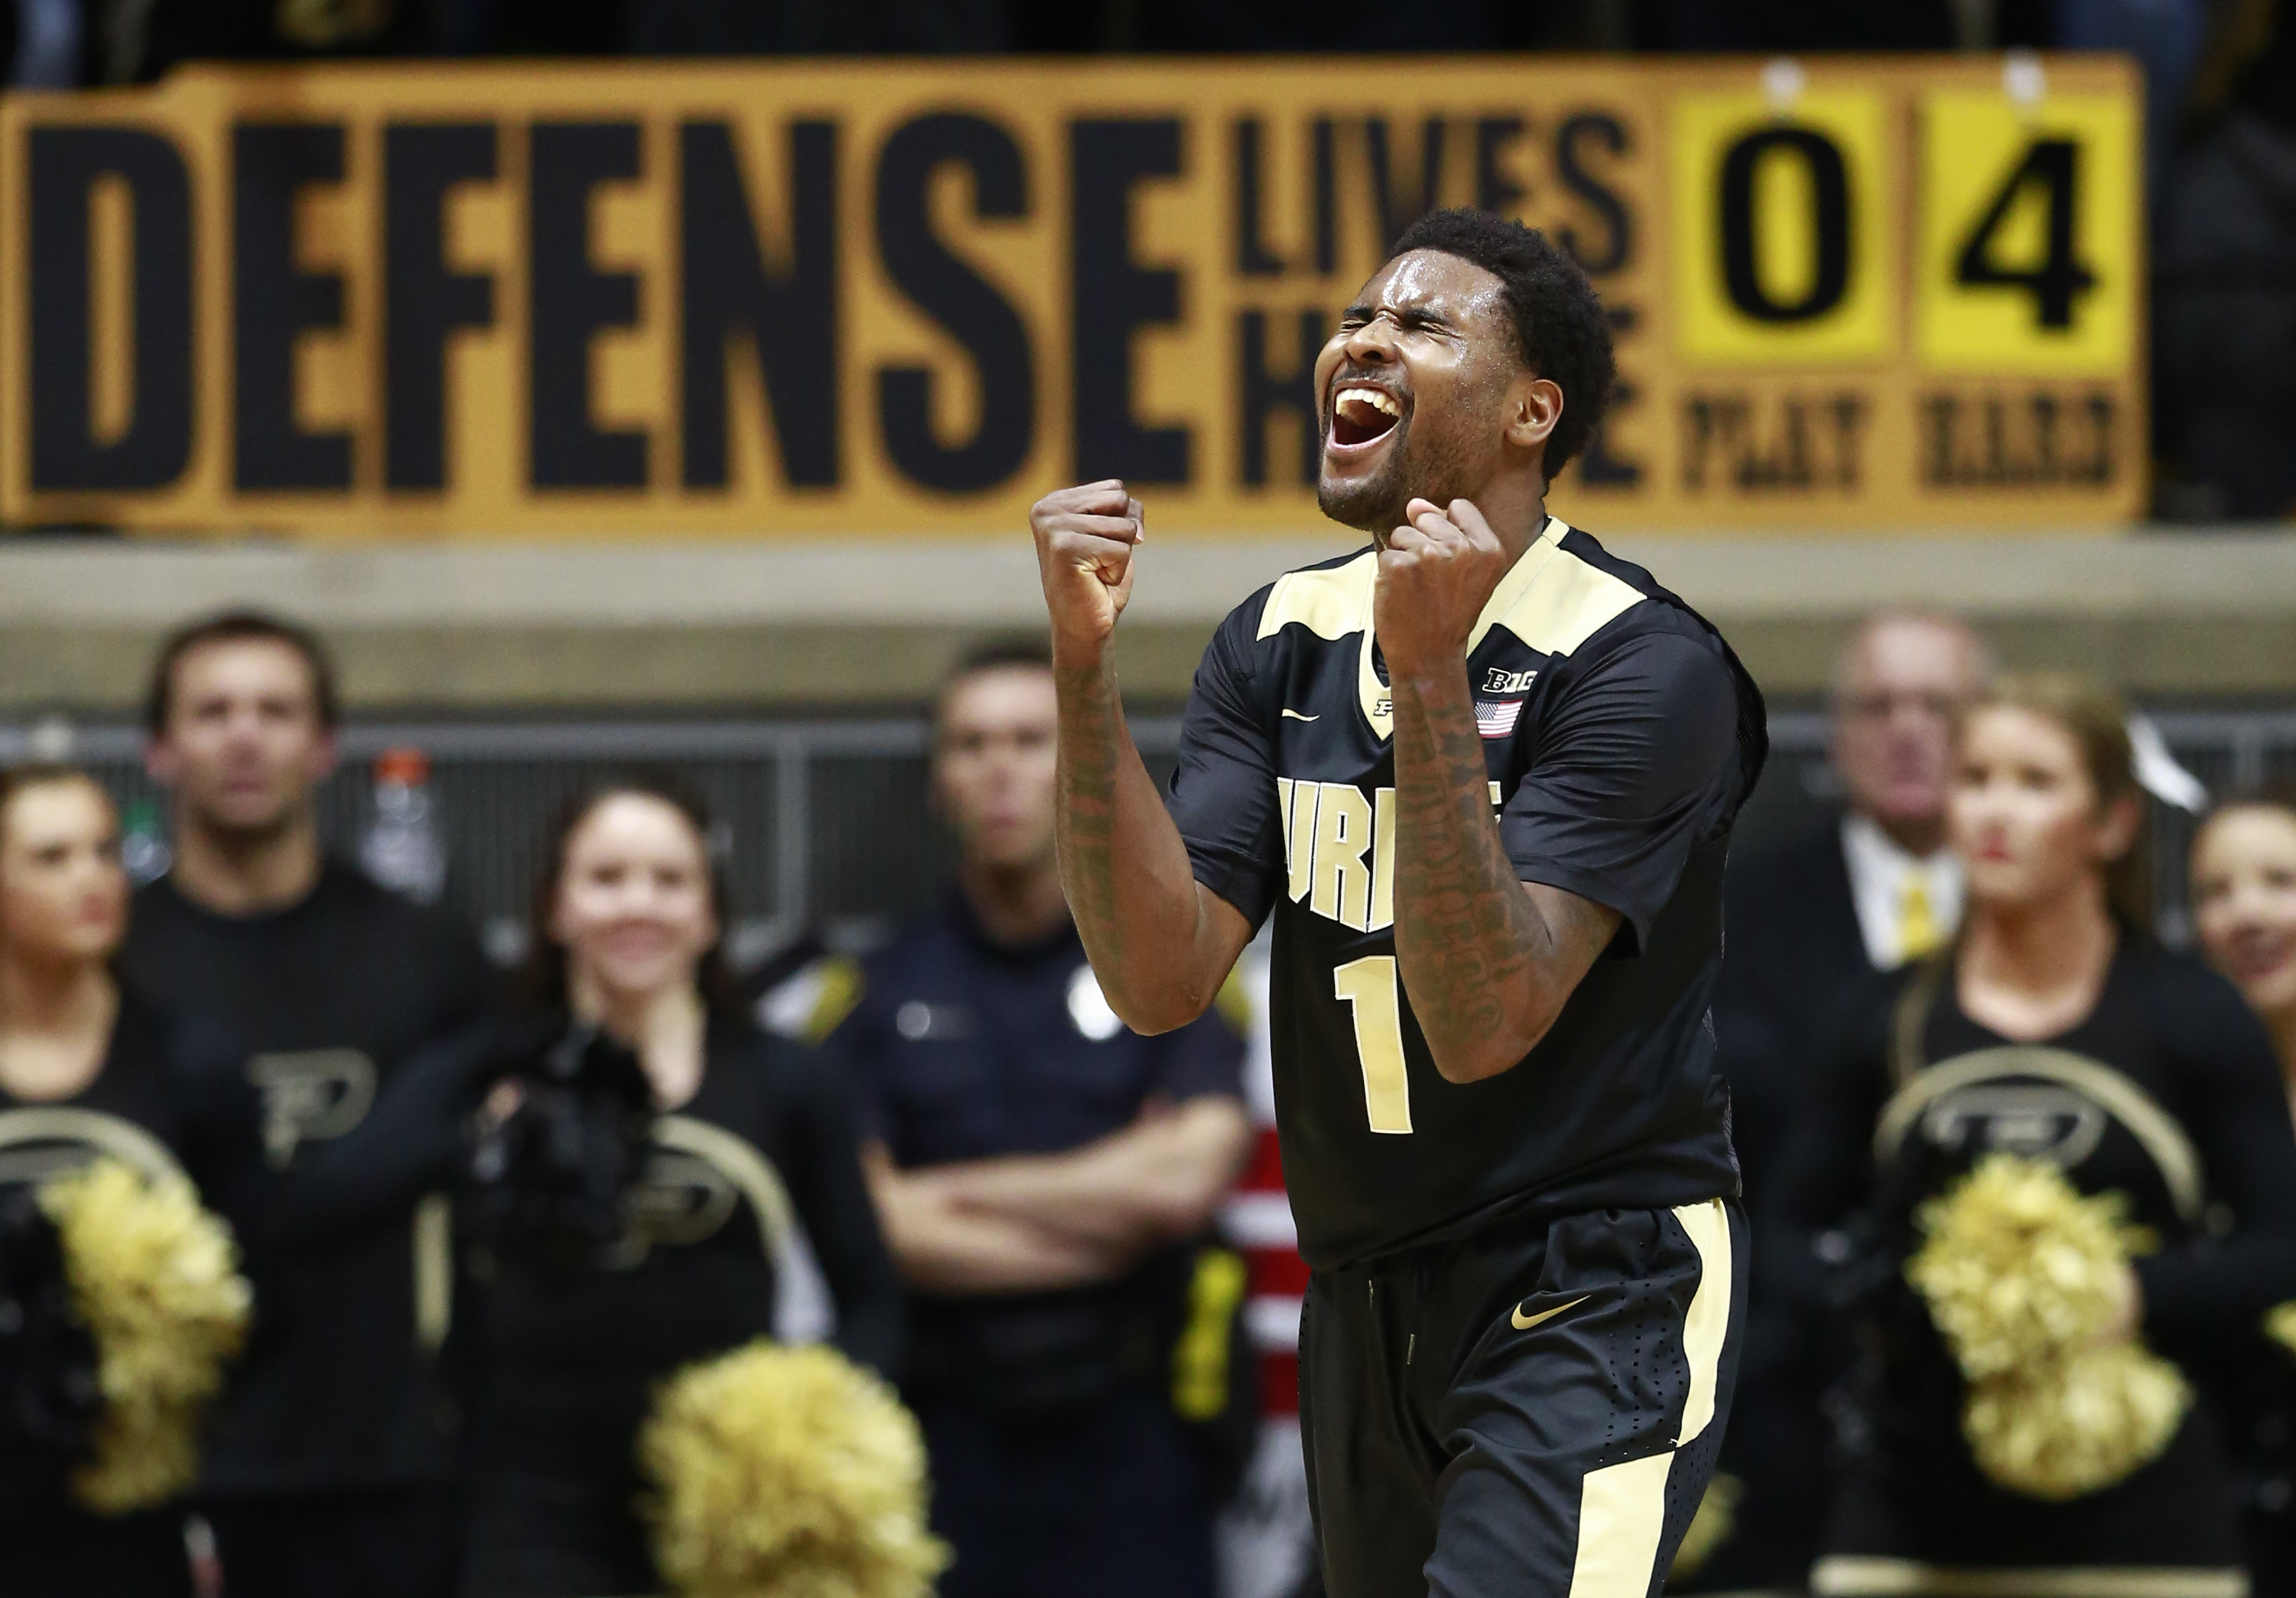 Purdue guard Johnny Hill celebrates a Maryland turnover in the second half of an NCAA college basketball game, Saturday, Feb. 27, 2016, in West Lafayette, Ind. (AP Photo/R Brent Smith)